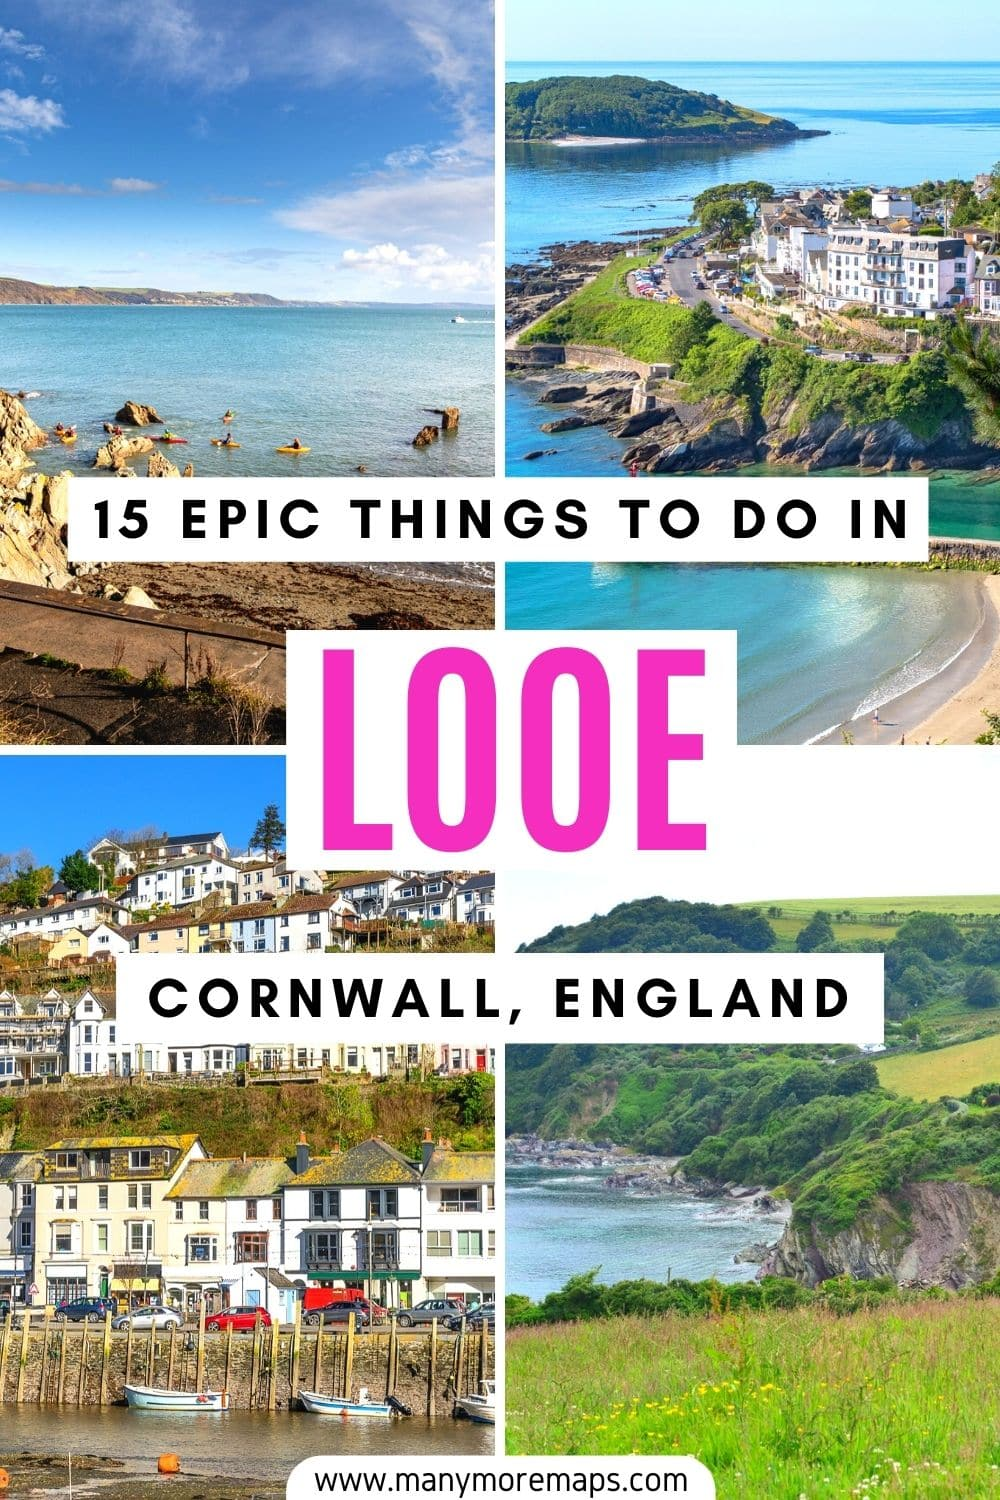 Planning to visit Looe, one of the many beautiful places in Cornwall, England? Here are the best things to do in Looe Cornwall including Looe beach, Looe monkey sanctuary, Looe museum and hiking on the south west coast path! Cornwall england beaches towns places to visit where to go in, Looe cornwall holidays, cornwall in summer, beautiful places in England, summer holidays in England, UK staycations, staycation inspiration, seaside towns in cornwall.